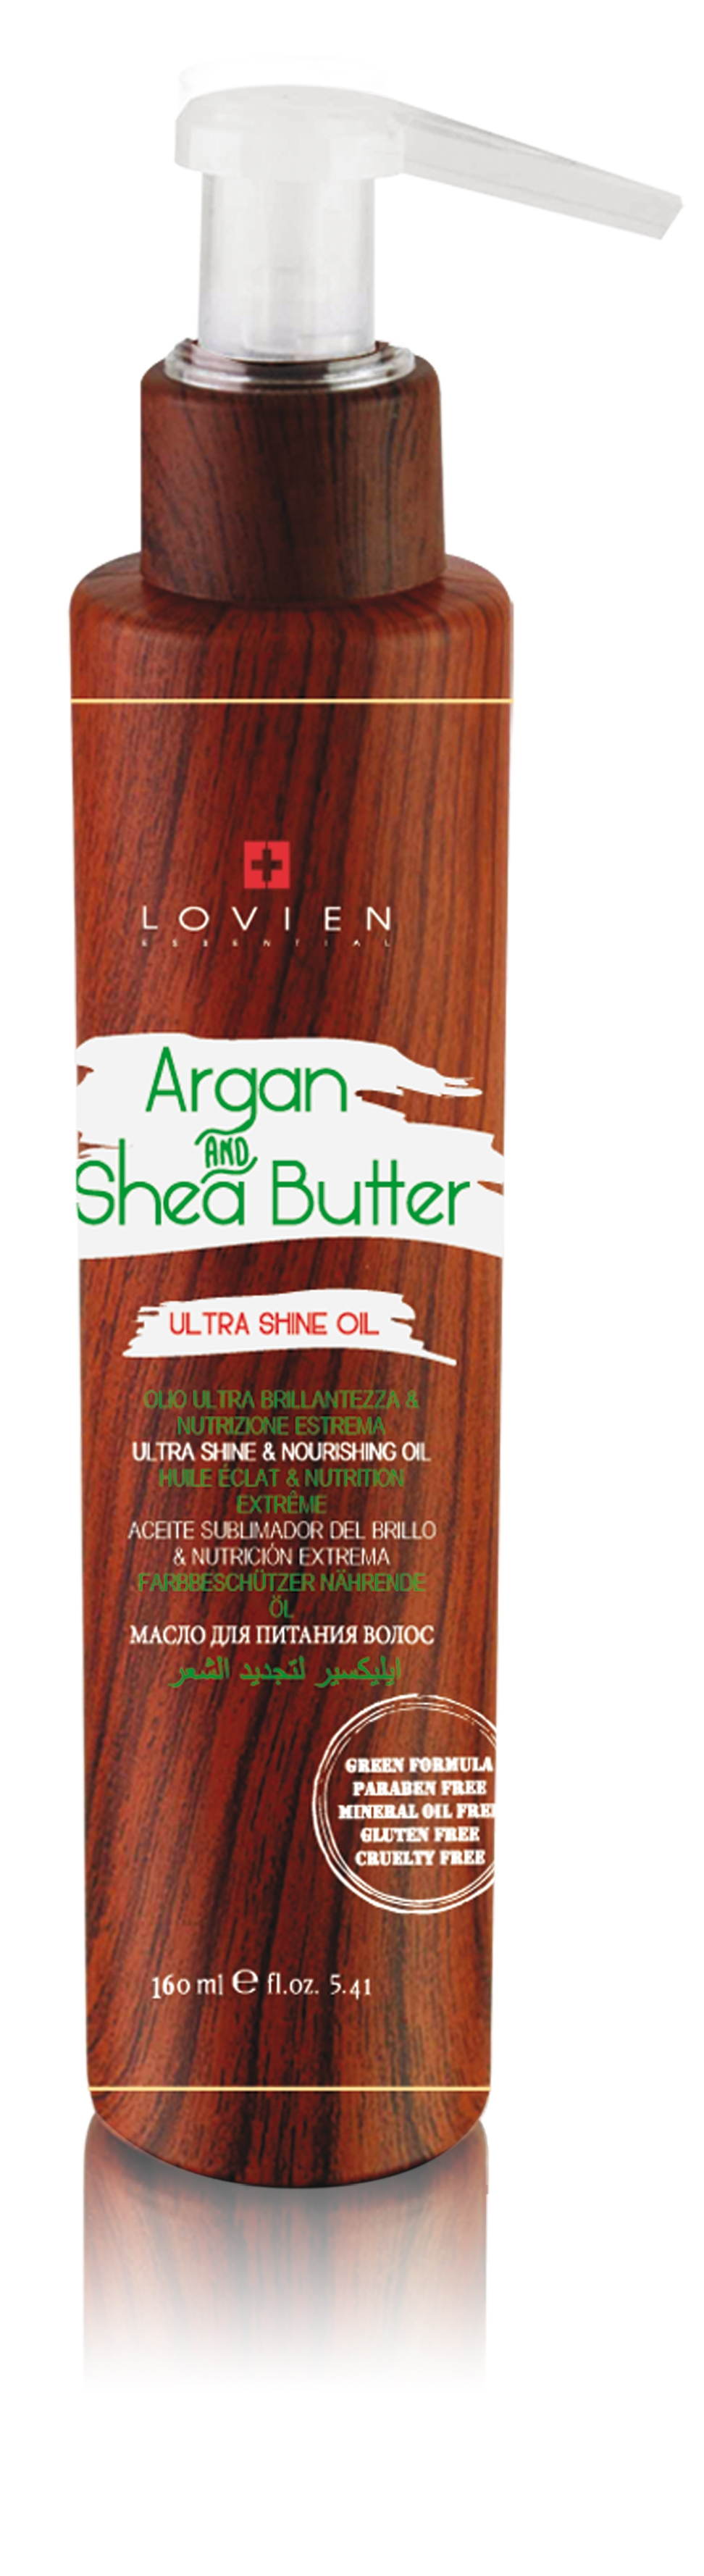 Lovien Argan Oil & Shea Butter Nourishing Oil 160 ml - olejové sérum na vlasy